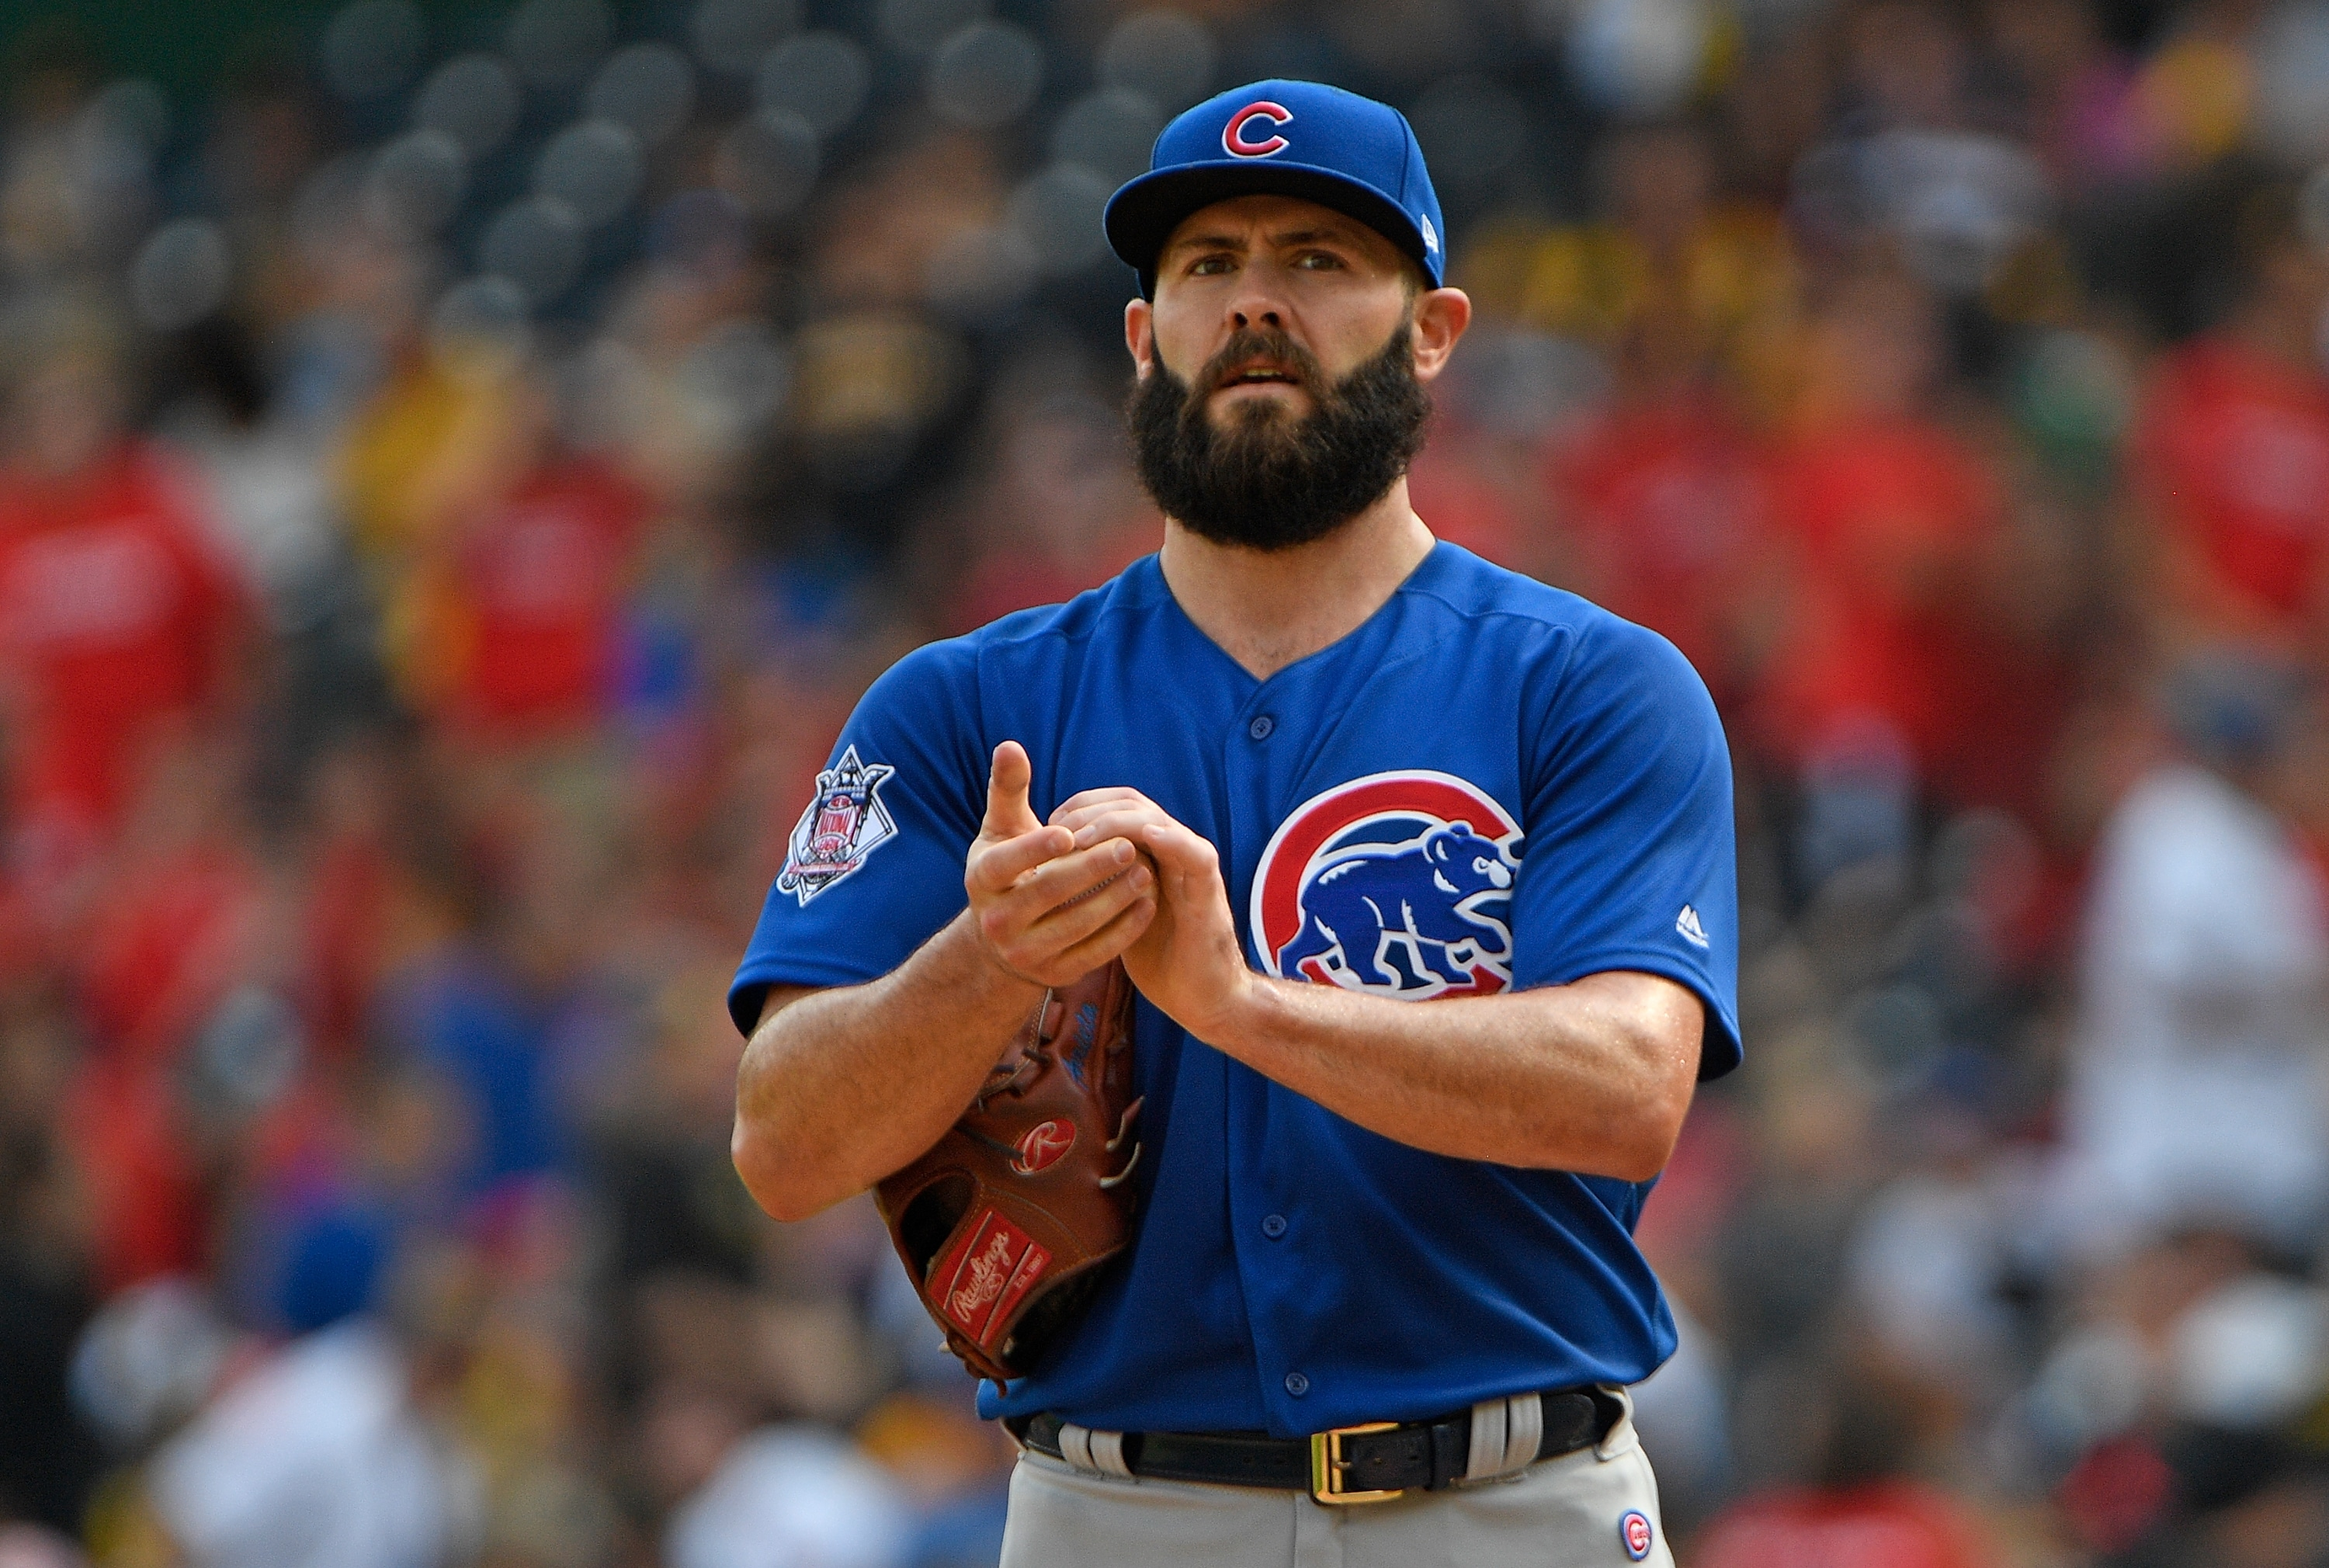 Cubs RHP Jake Arrieta exits early with apparent injury